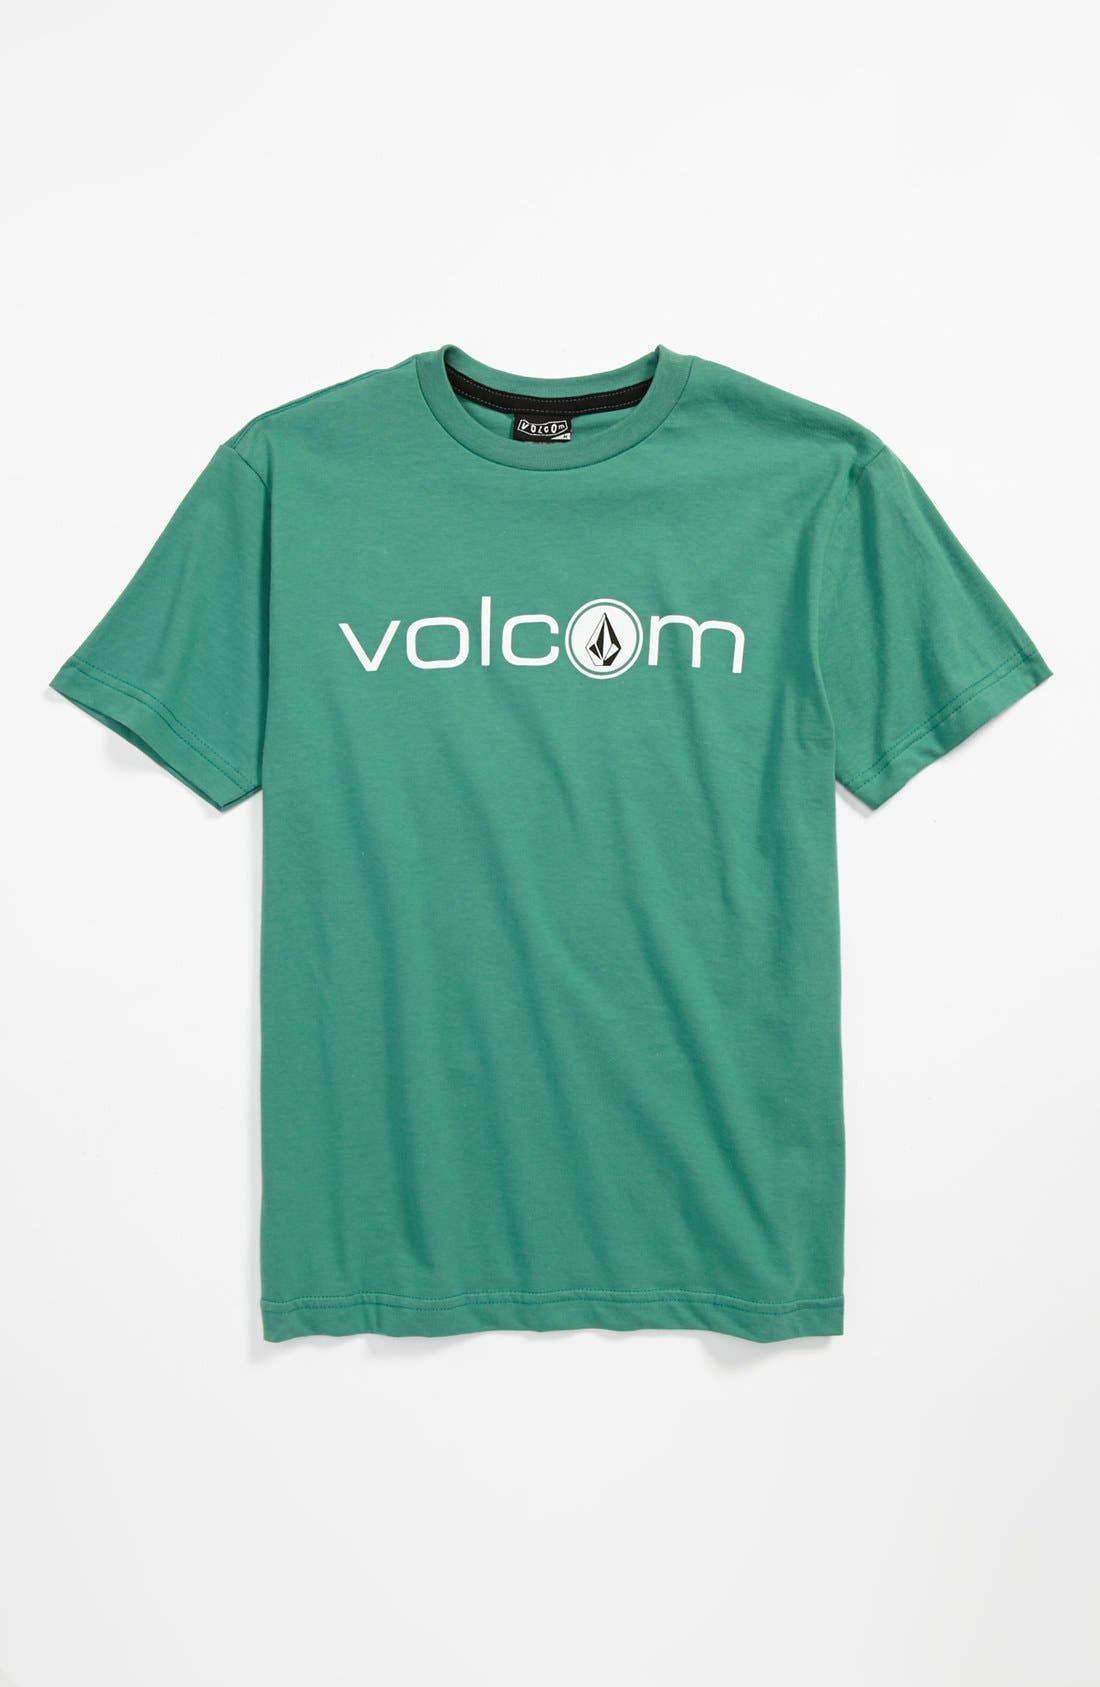 Alternate Image 1 Selected - Volcom 'Nuero Corpo' T-Shirt (Little Boys & Big Boys)